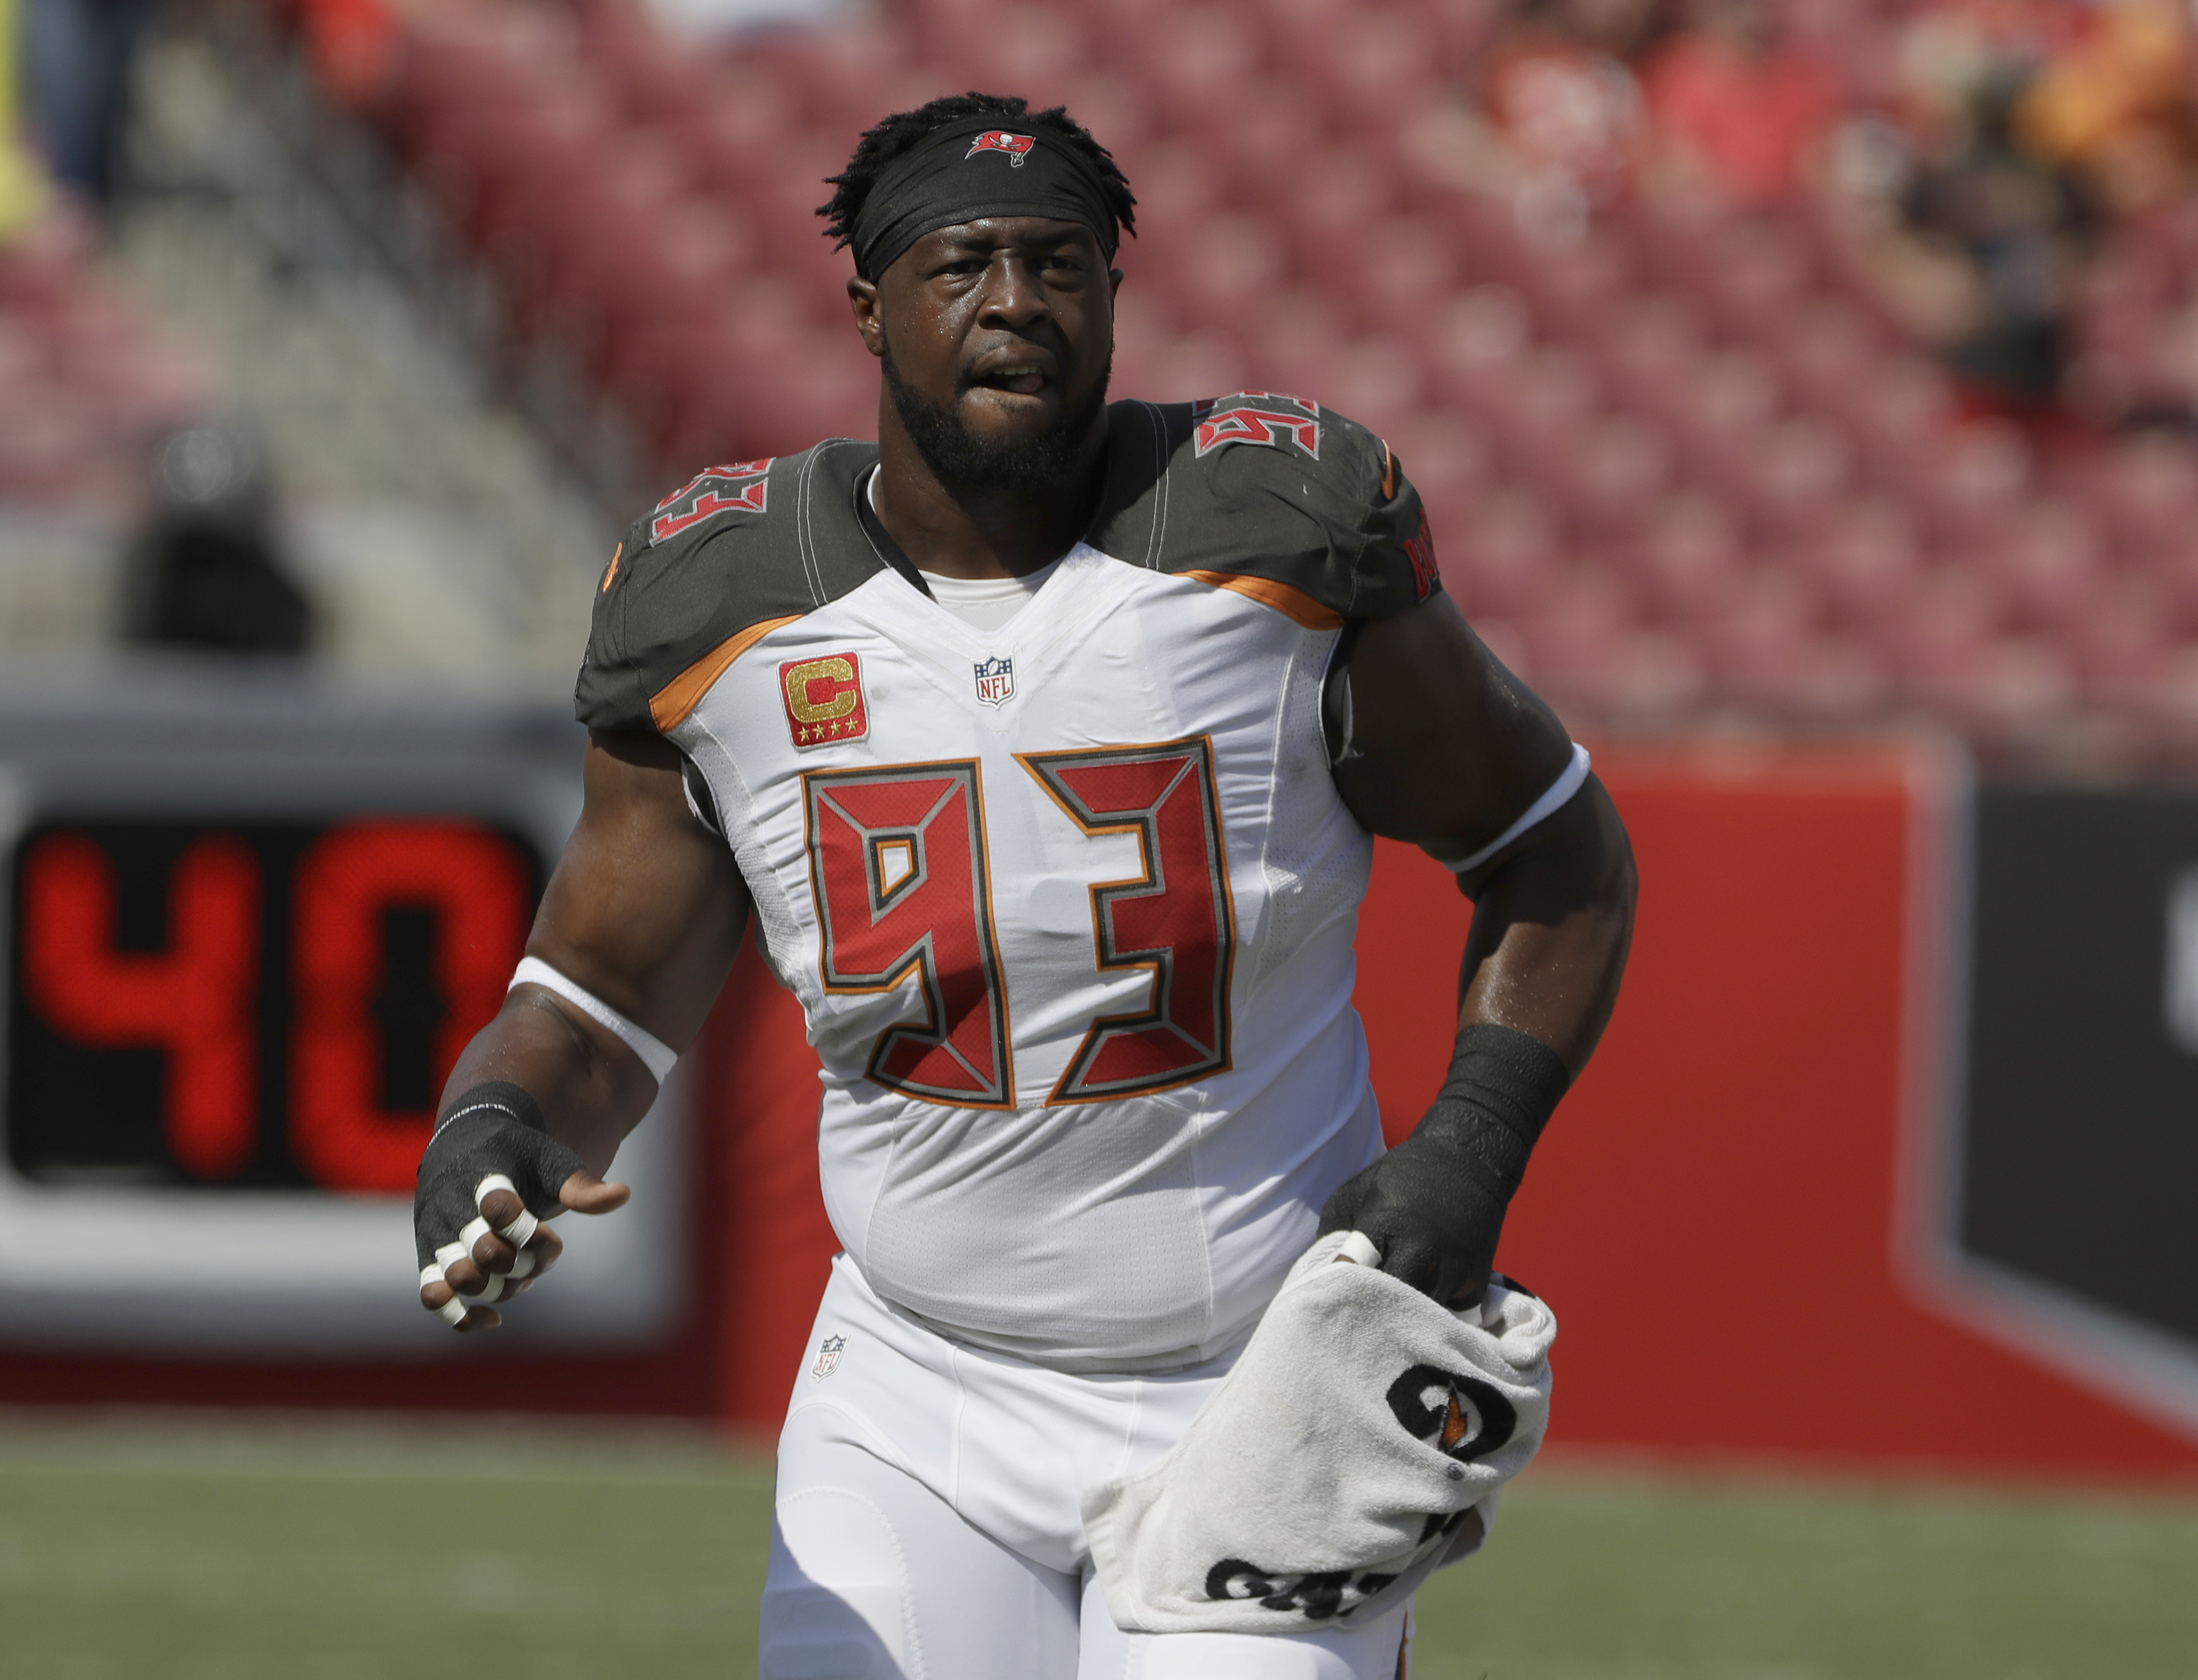 FILE - This Sunday, Sept. 25, 2016 file photo shows Tampa Bay Buccaneers defensive tackle Gerald McCoy (93) before an NFL football game against the Los Angeles Rams in Tampa, Fla. The Buccaneers play the Denver Broncos on Sunday, Oct. 2, 2016. (AP Photo/C